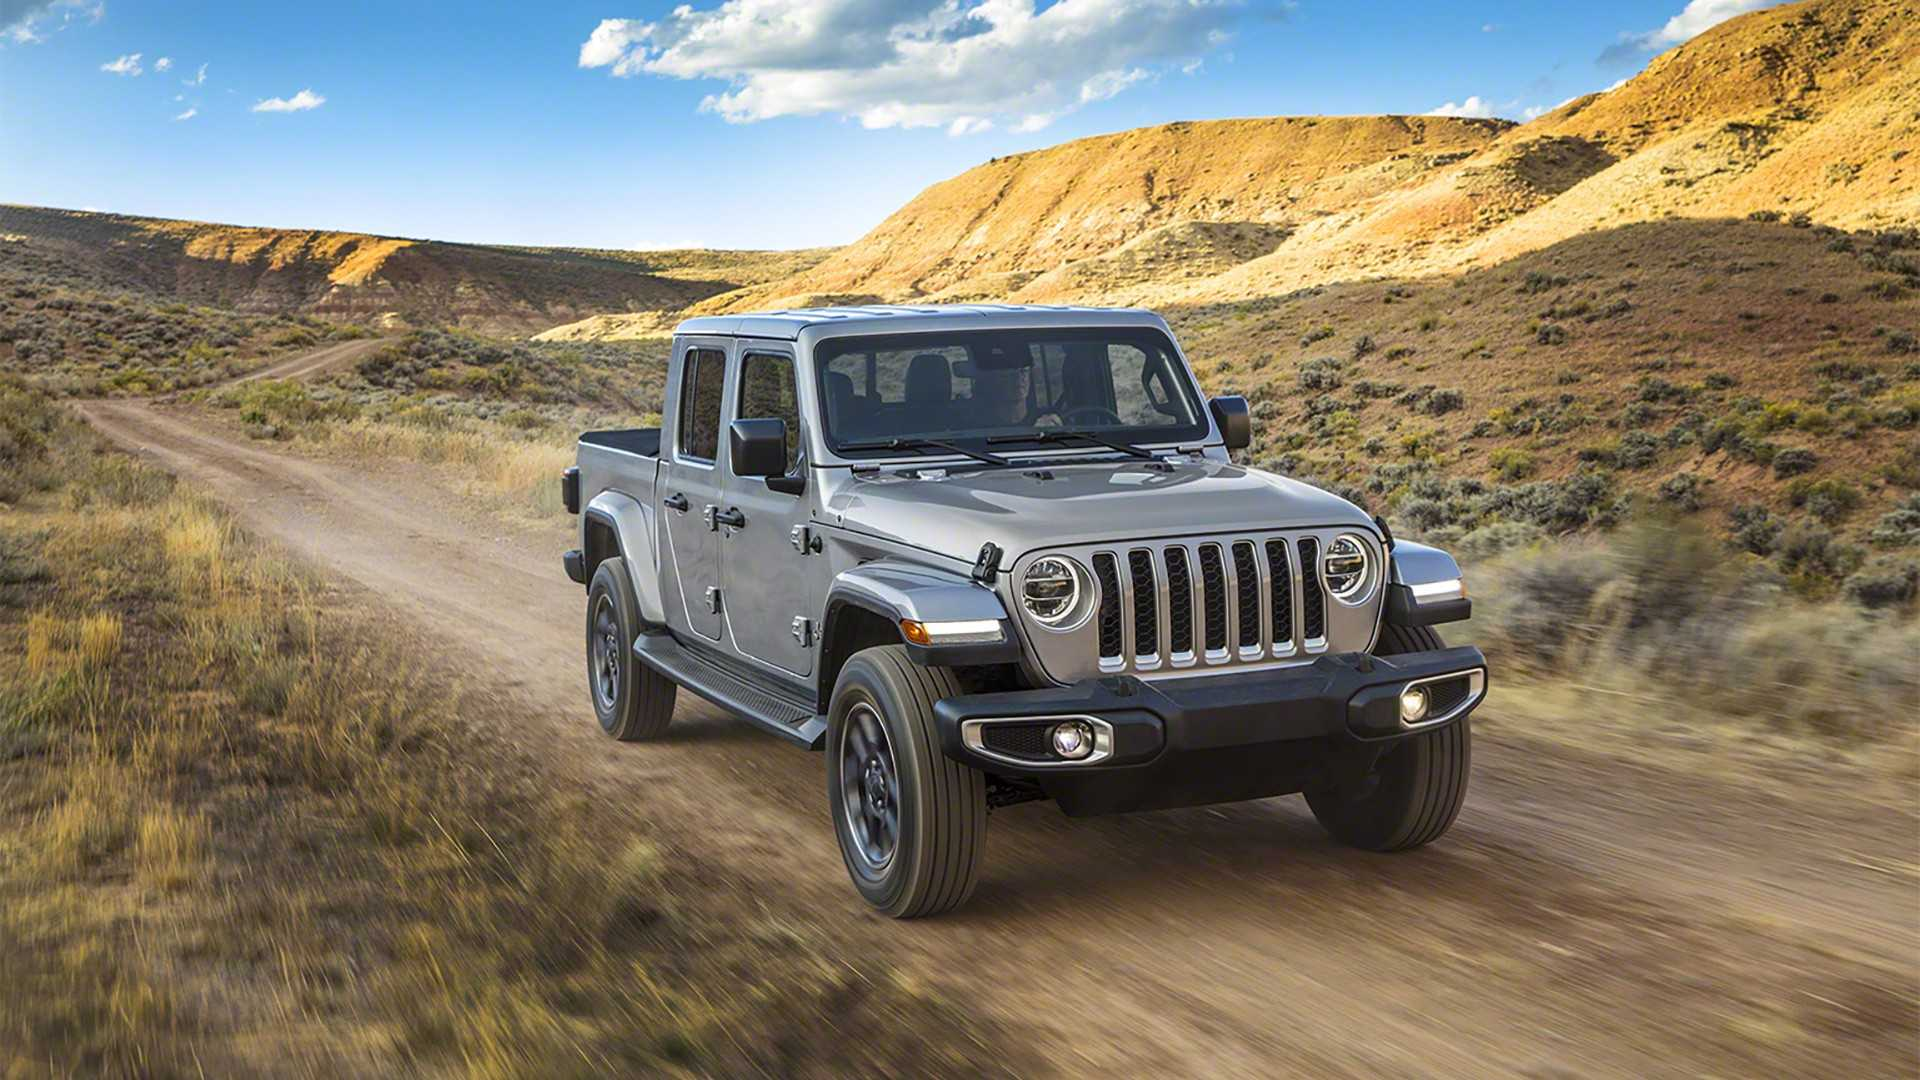 2019 Jeep Wrangler Truck New Cars Upcoming 2020 Flat Bed Gladiator Goes Official With Best In